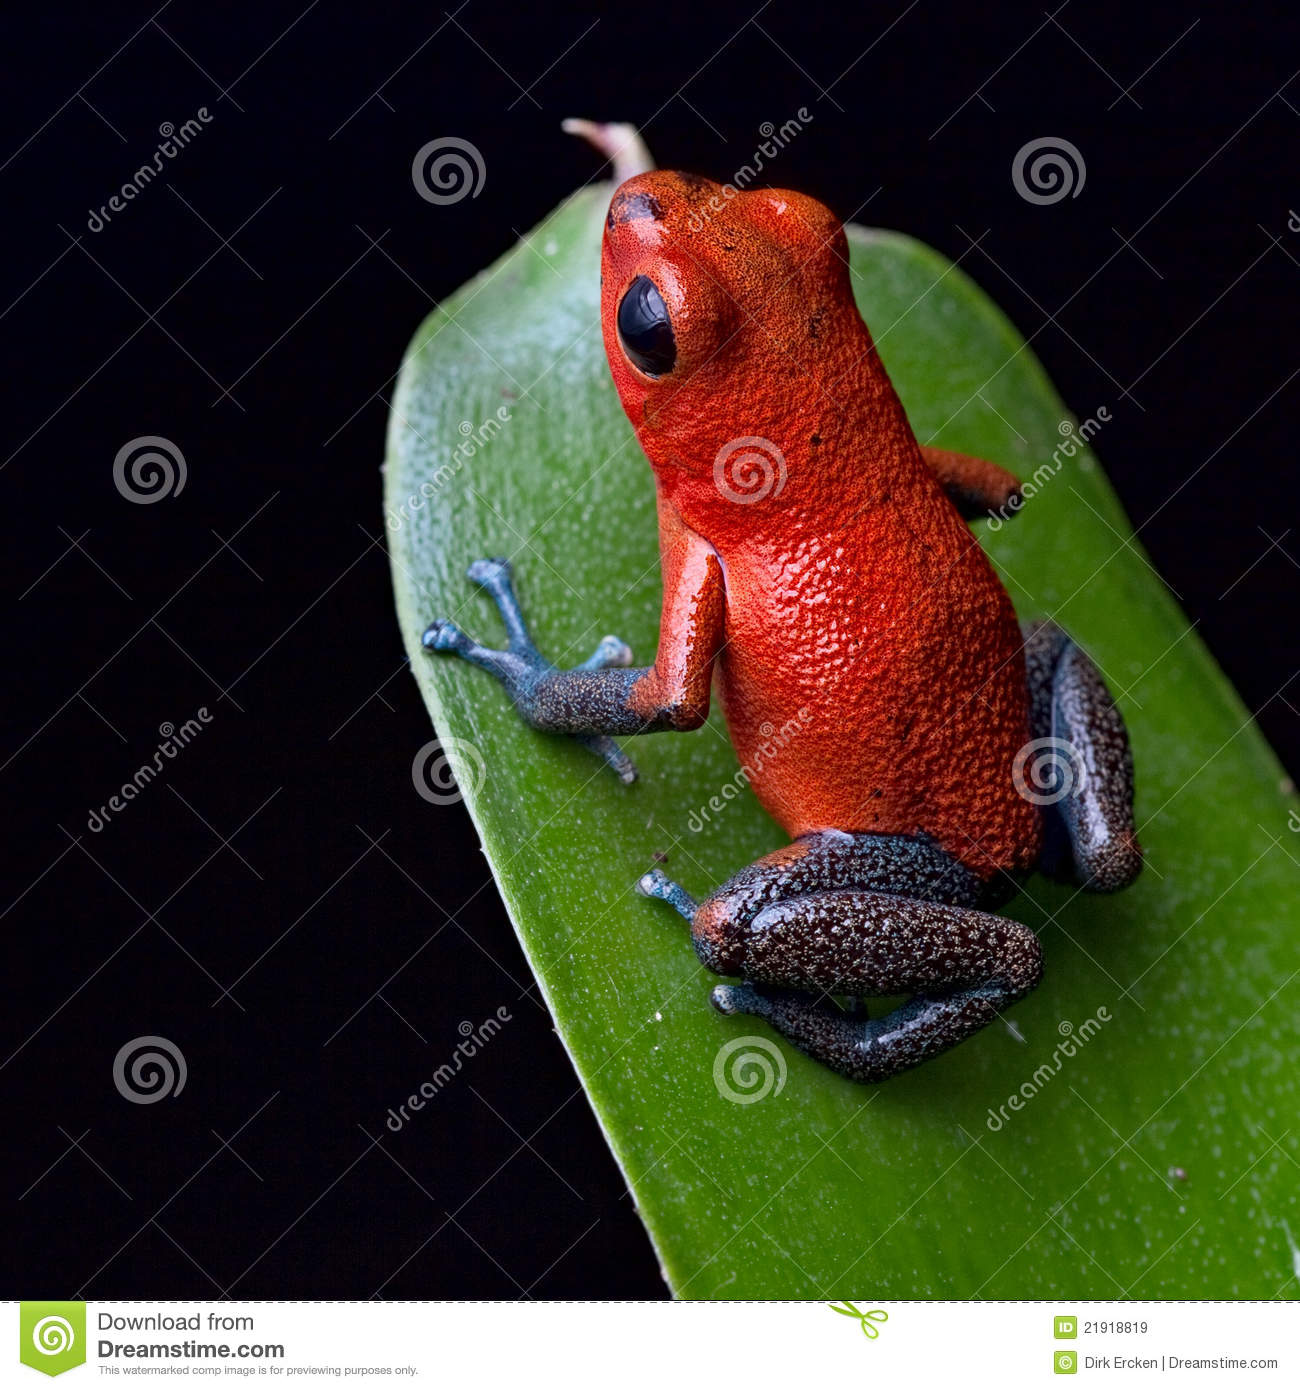 red poison dart frog costa rica jungle royalty free stock amazon rainforest animals clipart tropical rainforest animals clipart